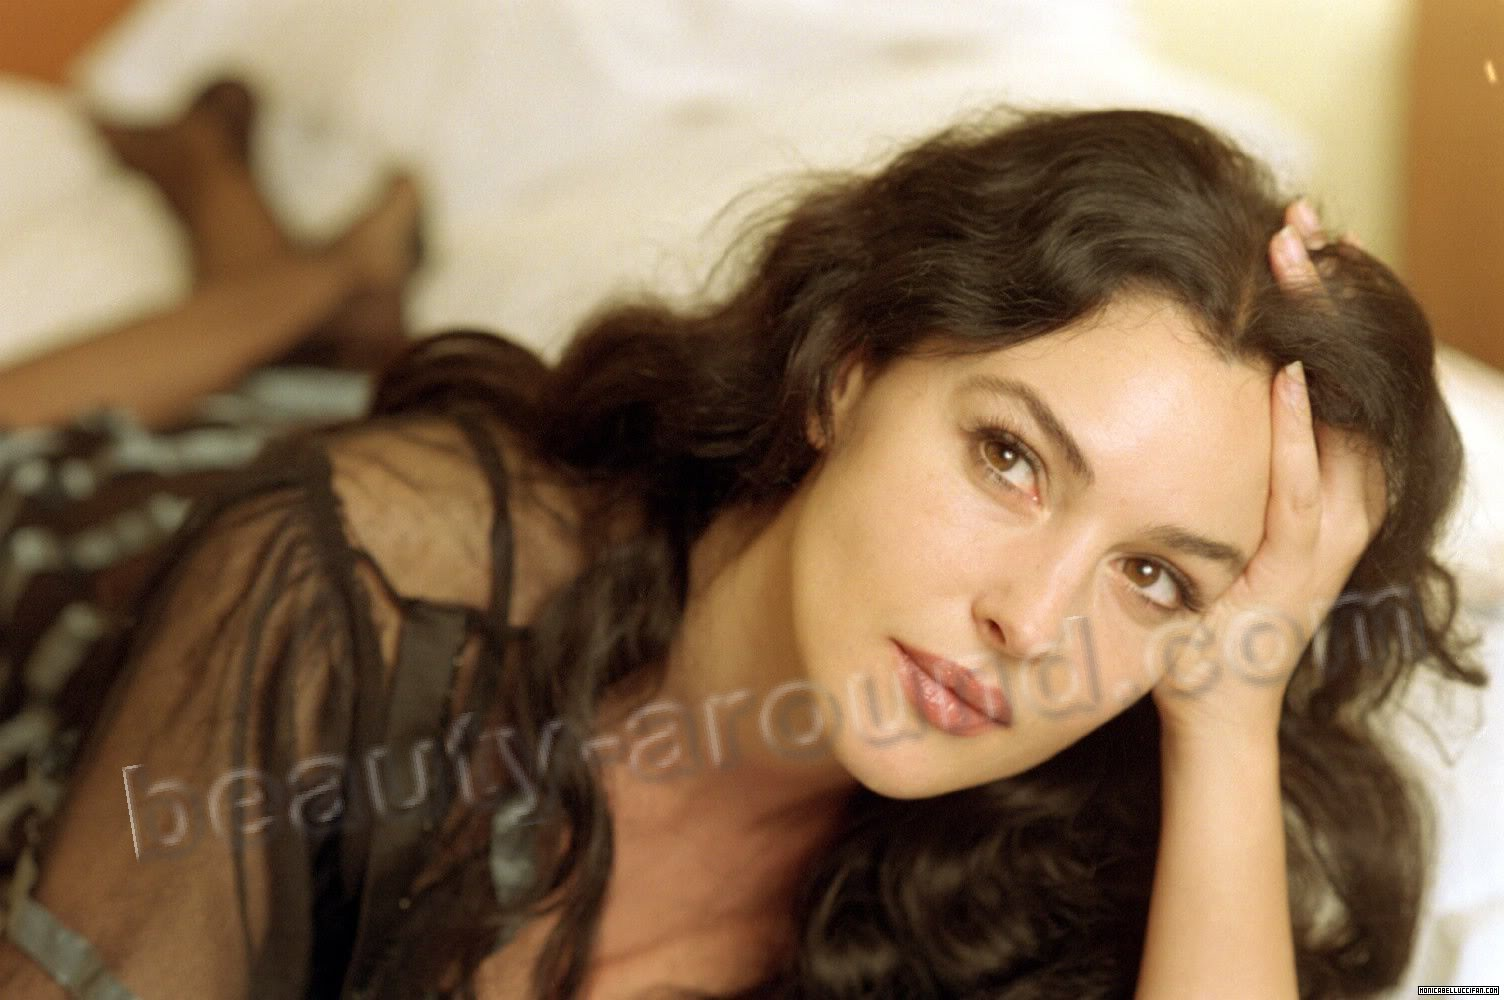 Monica Bellucci famous beautiful italian model and actress